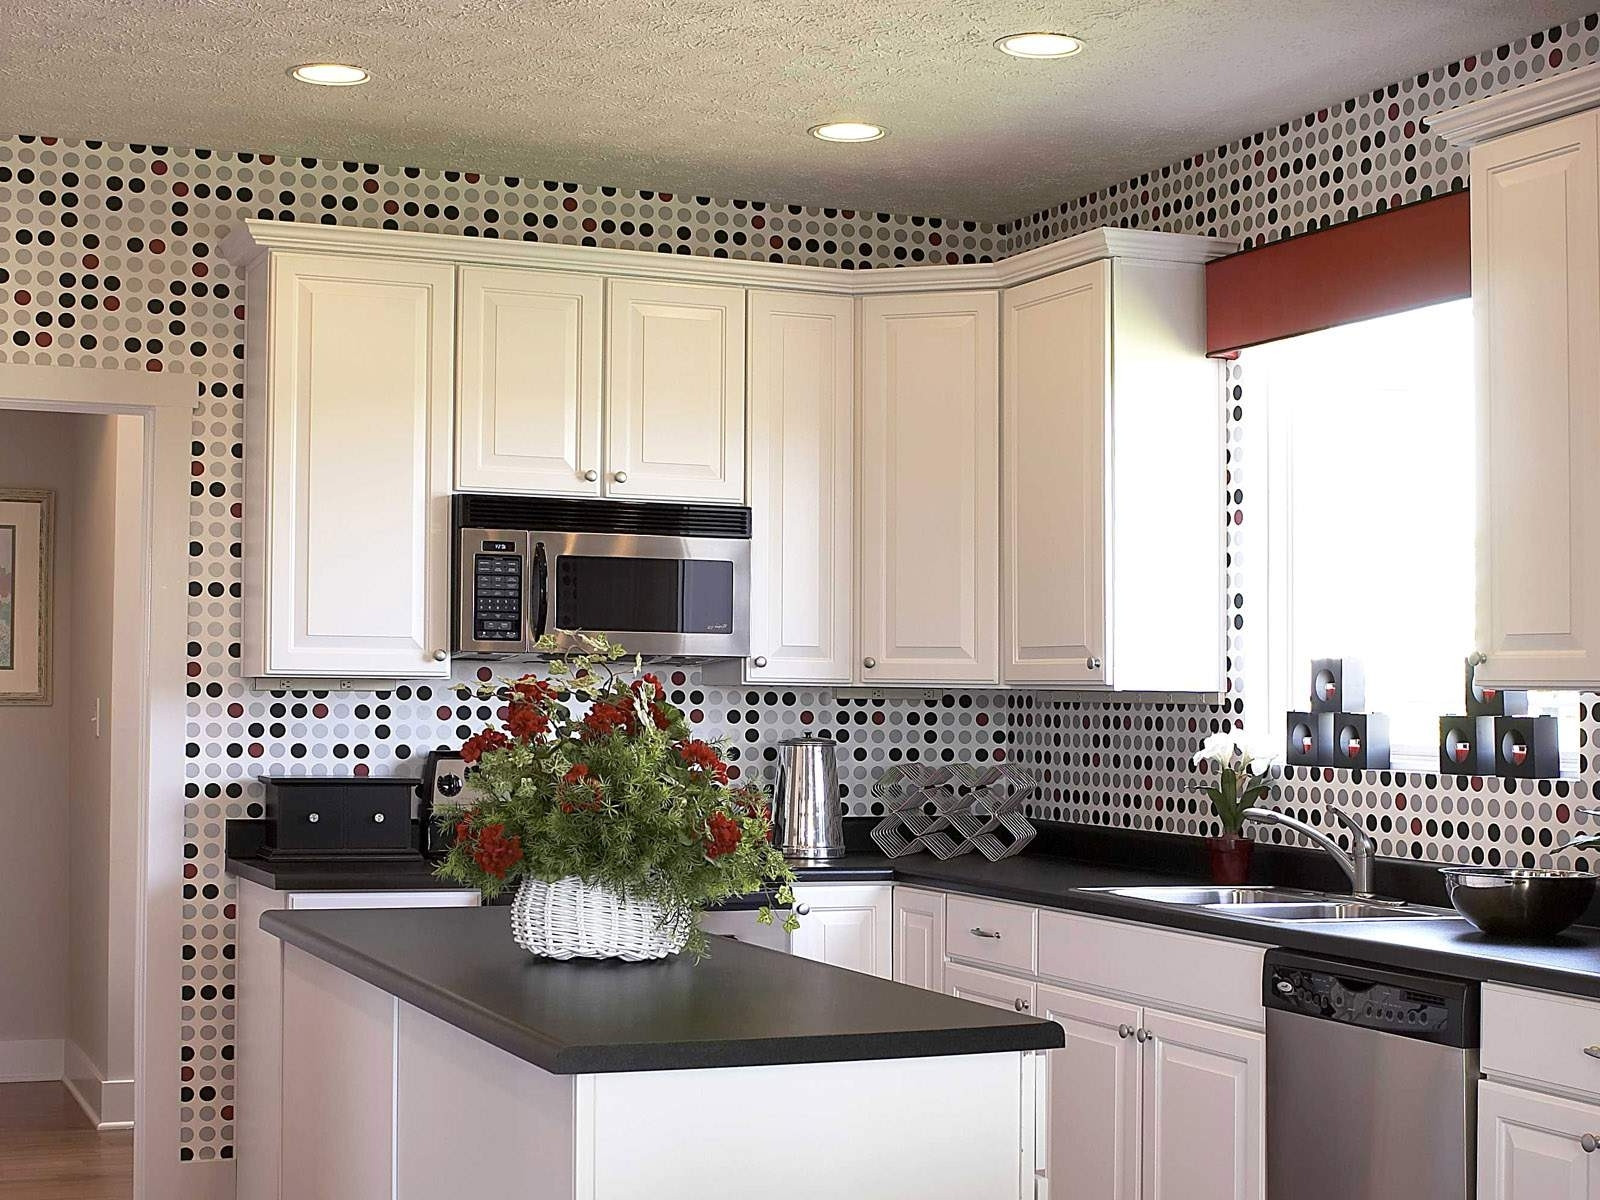 Best ideas about Red Black And White Kitchen Decor . Save or Pin Red Black White Kitchen Decor Now.